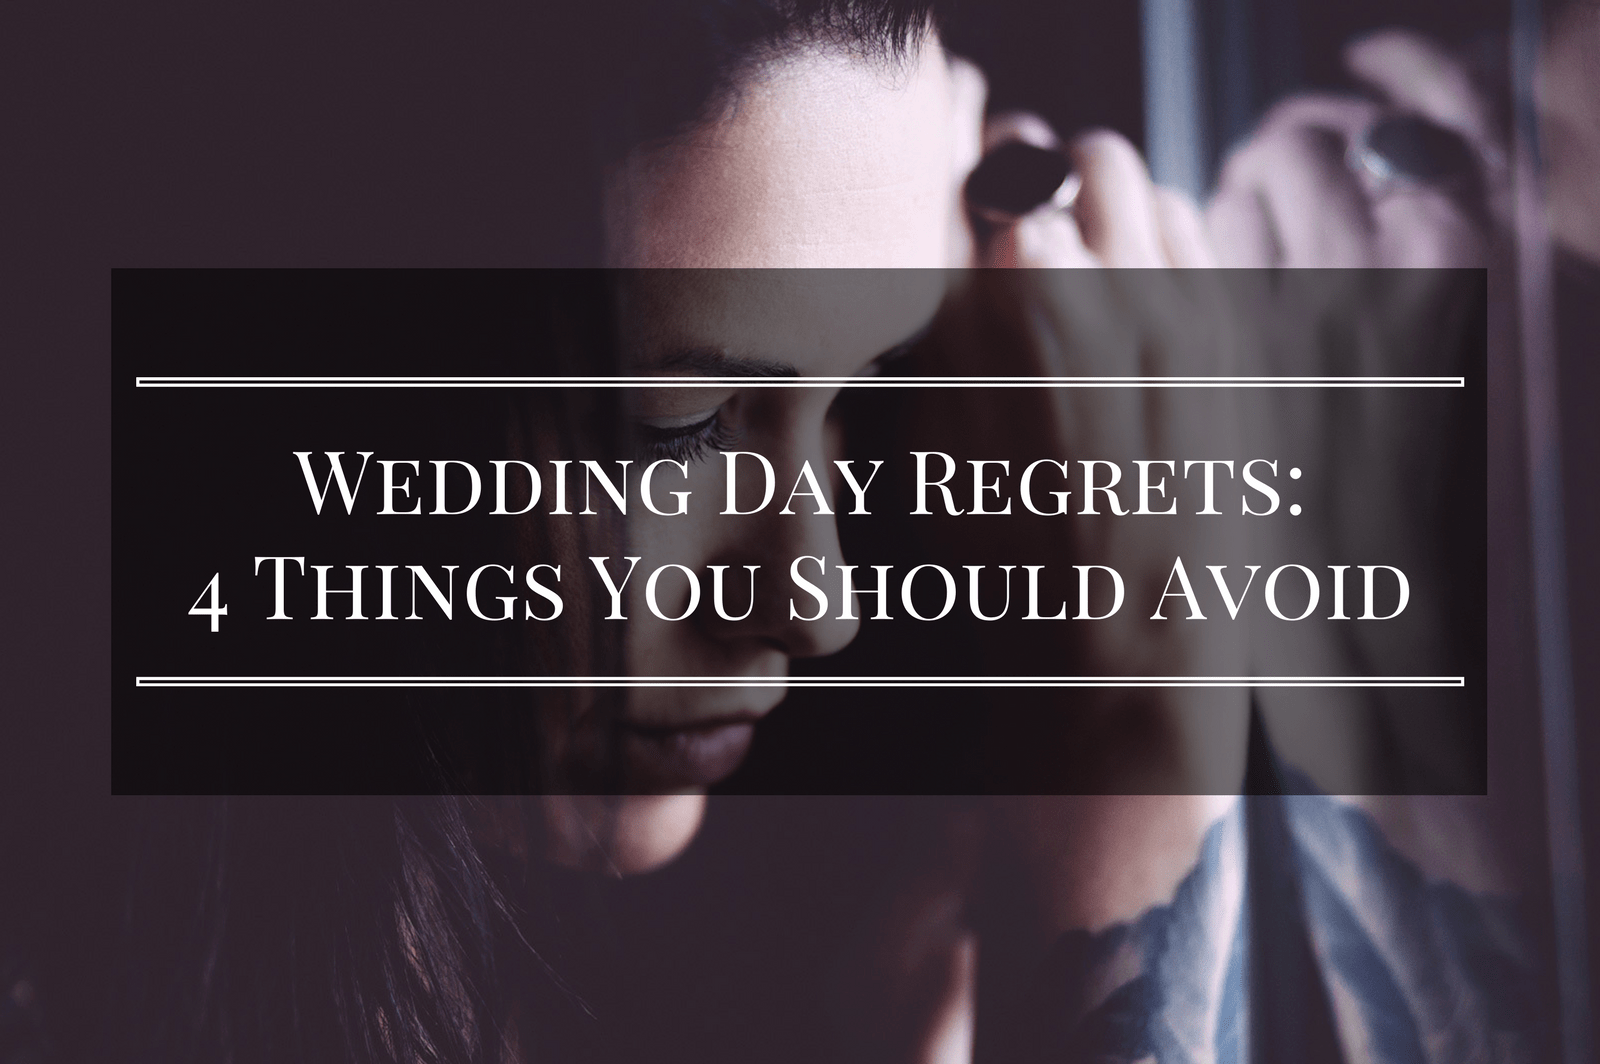 Wedding Day Regrets: 4 Things You Should Avoid